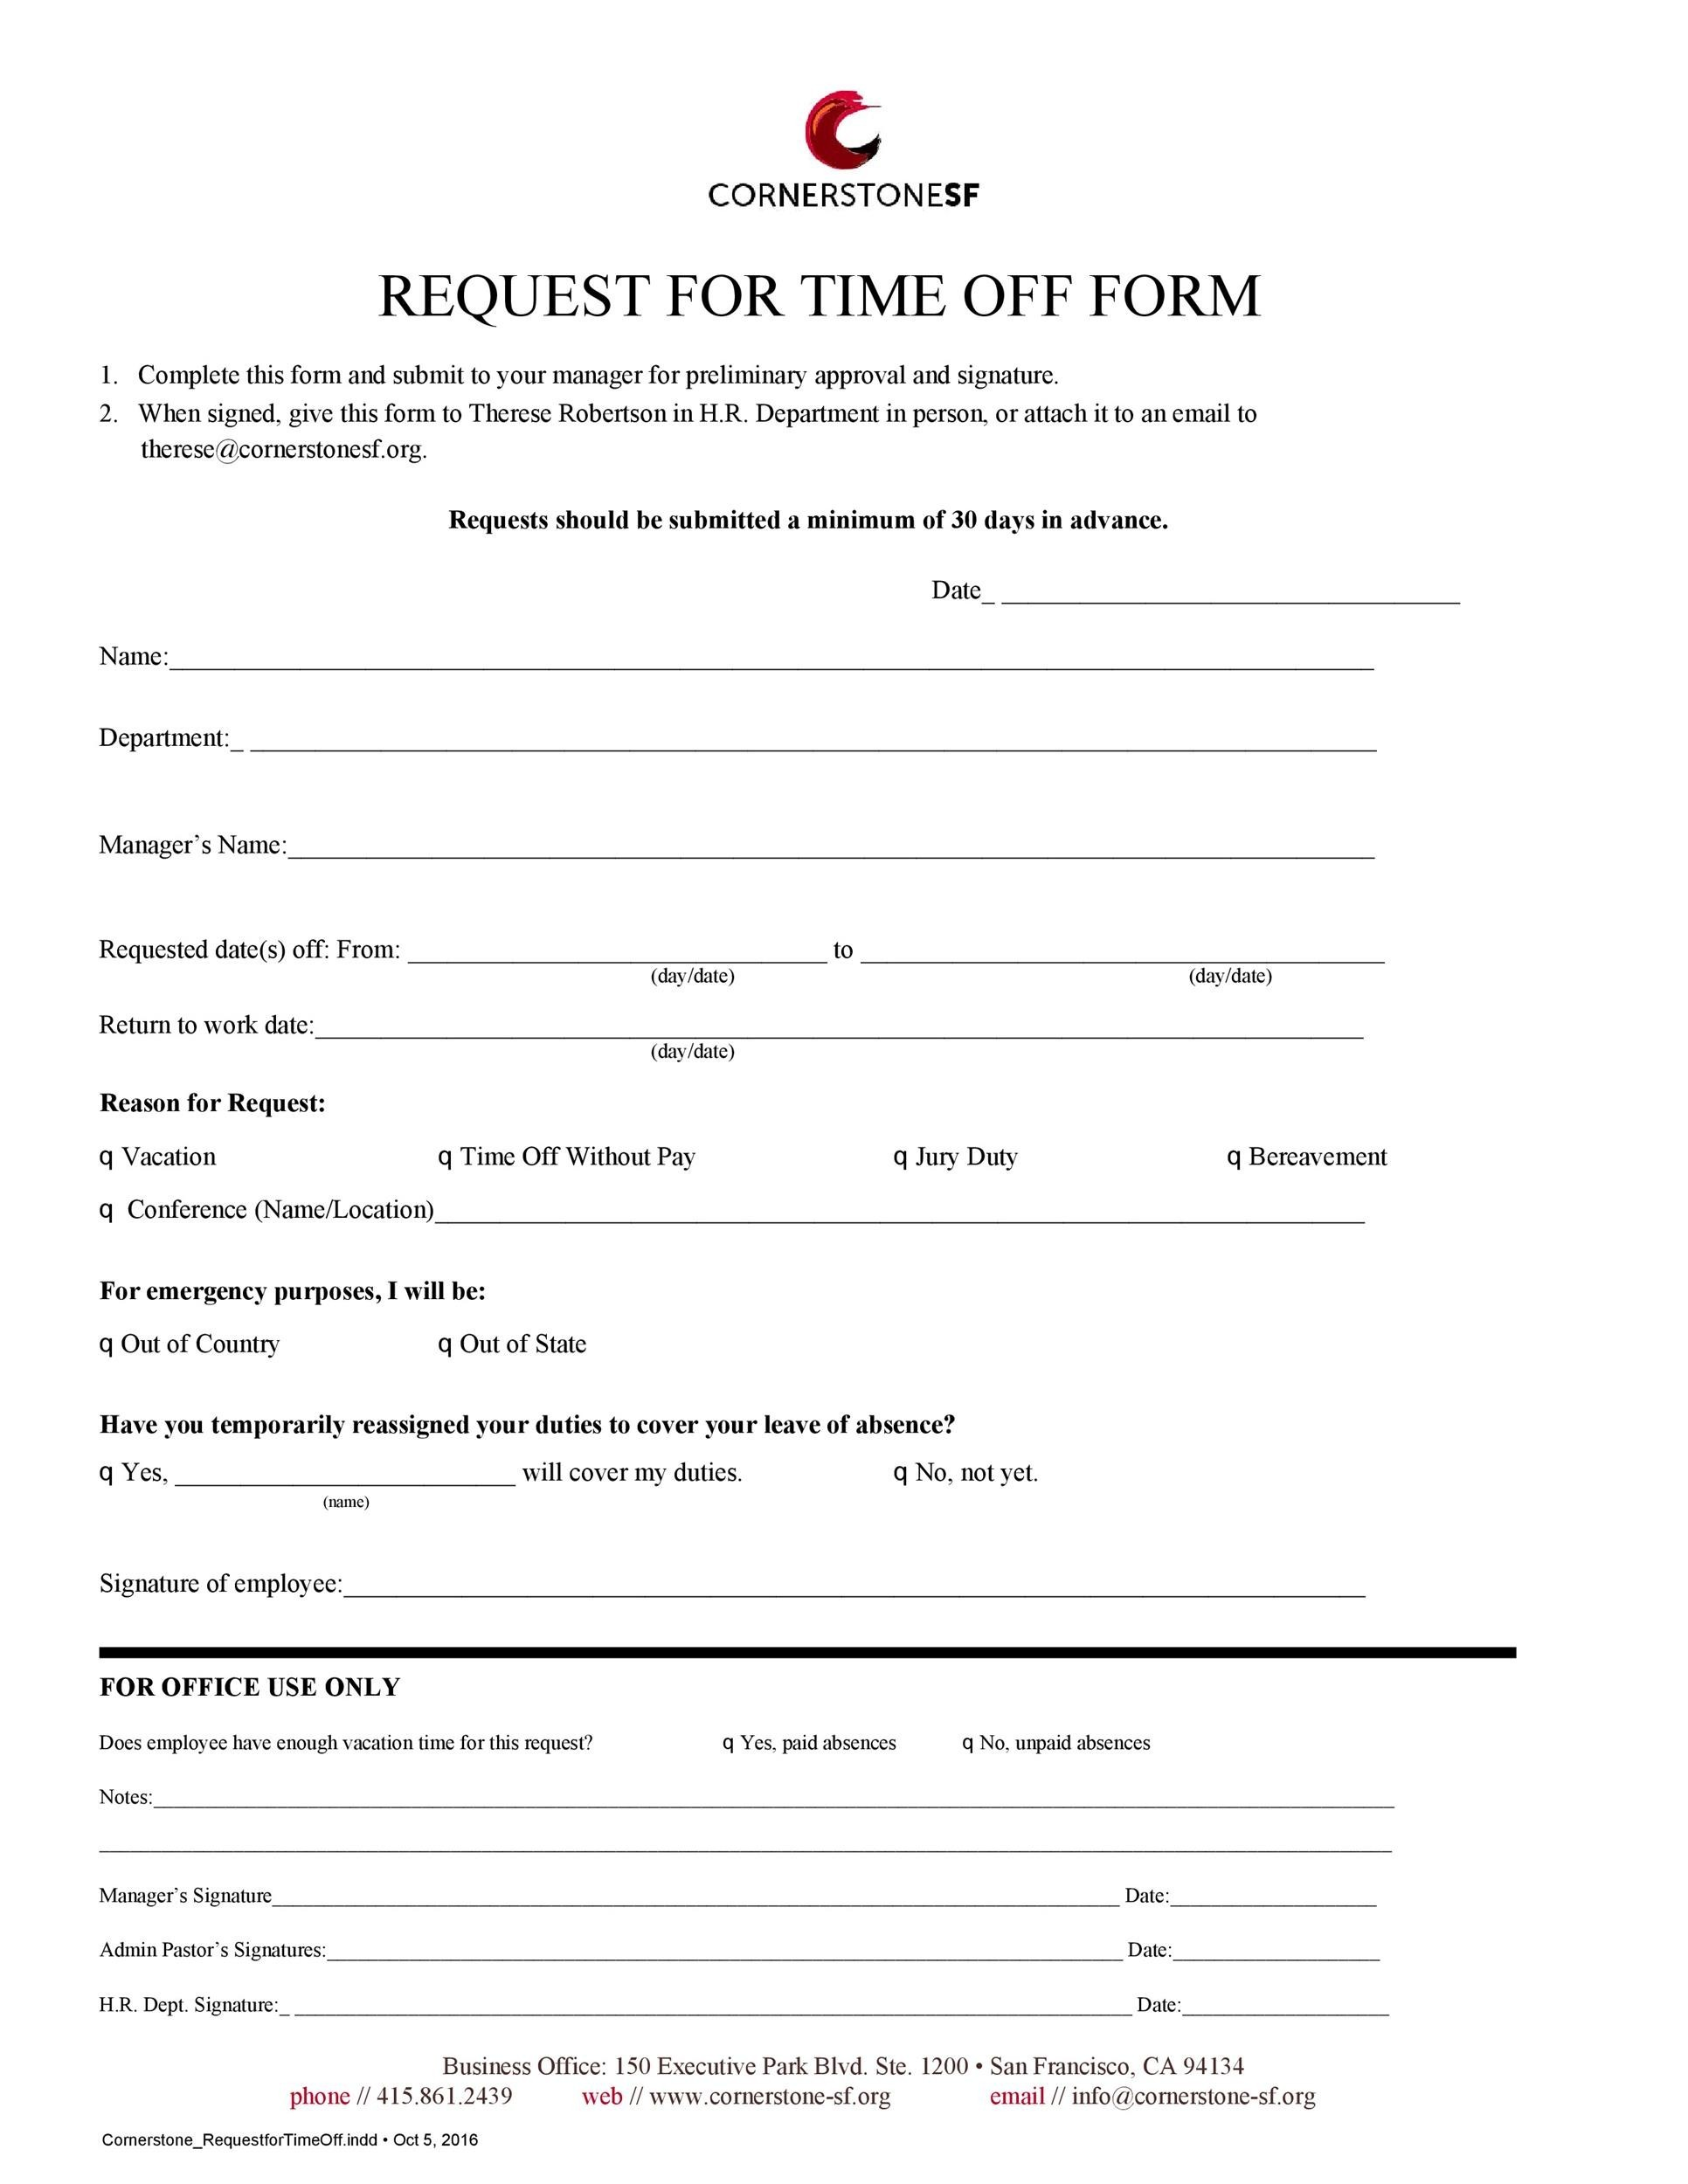 Request Time Off Template  Resume Ideas  NamanasaCom